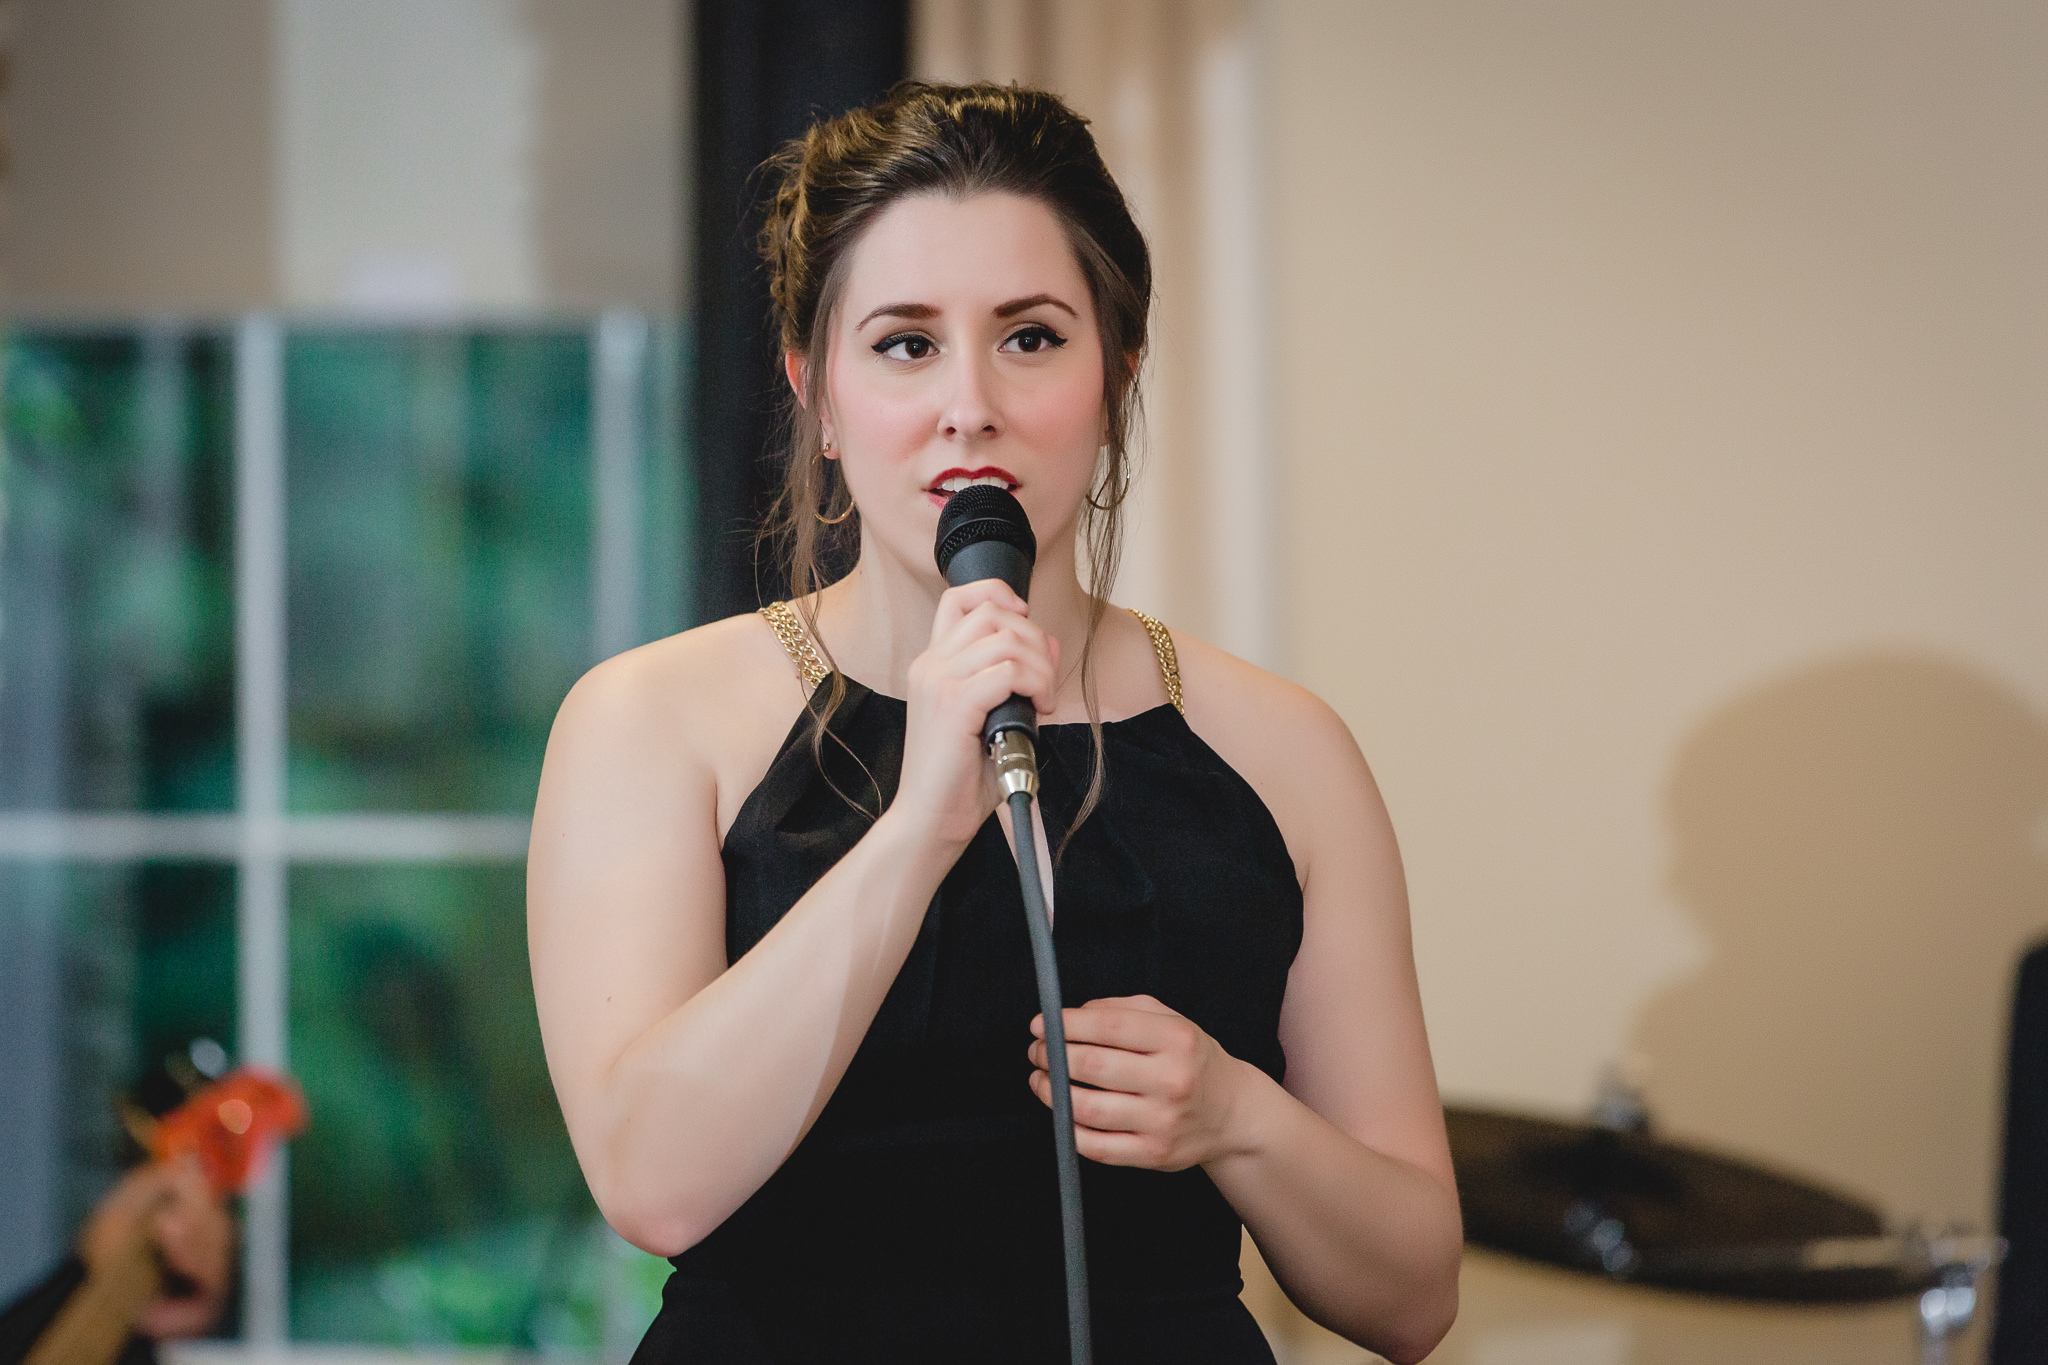 Soloist performs at wedding reception at Shannopin Country Club